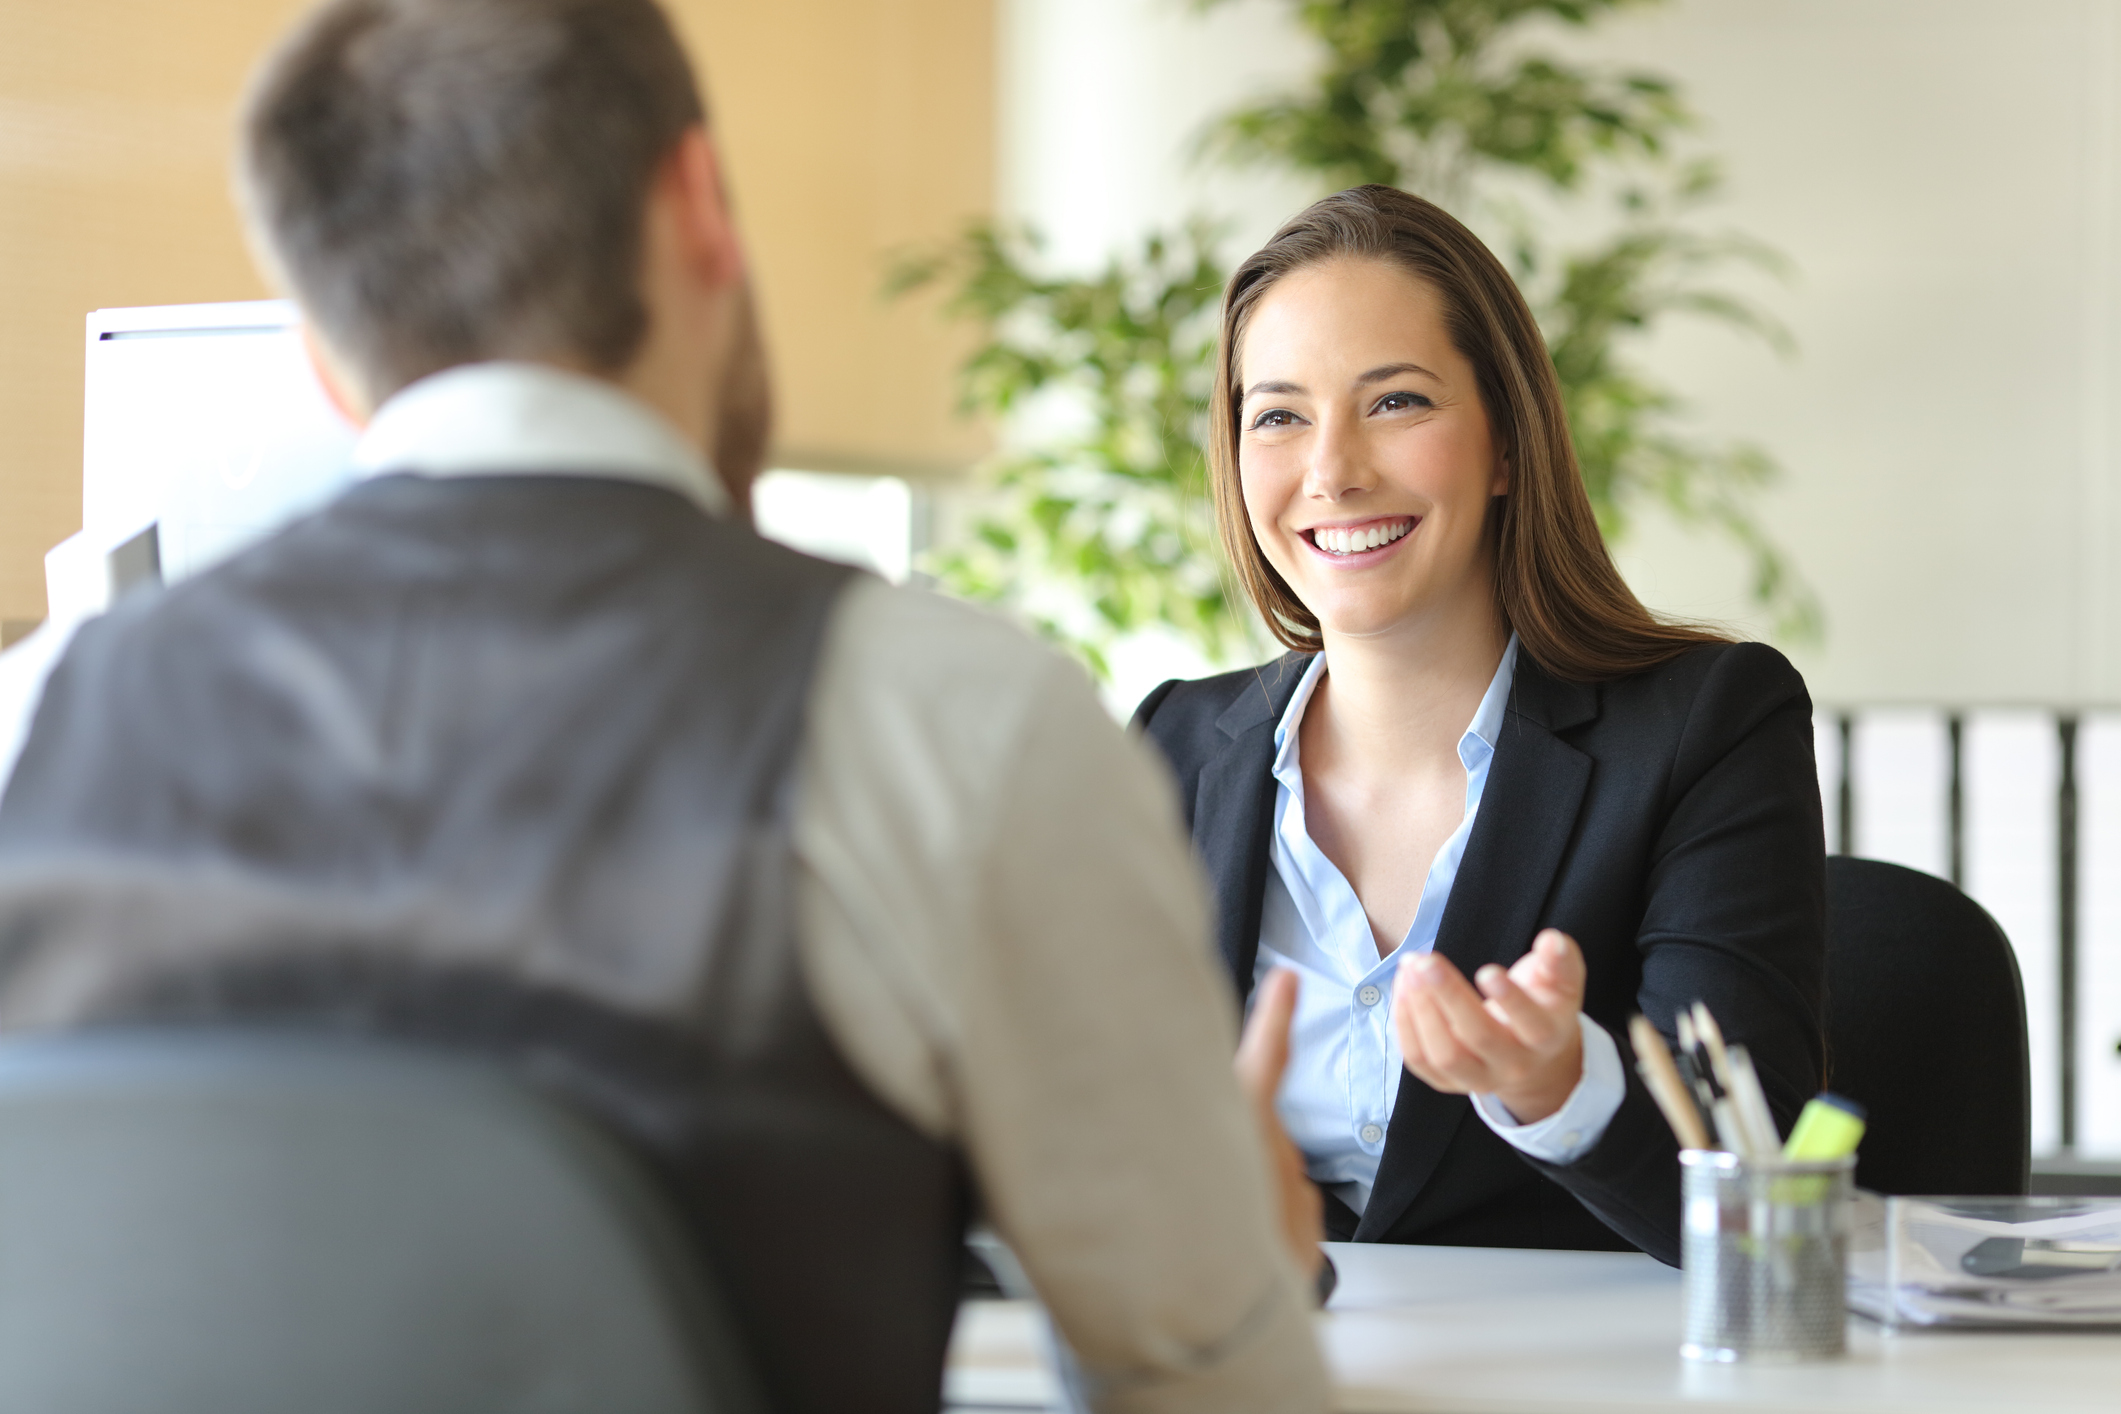 Sales Negotiation Strategies for Nonconfrontational Individuals